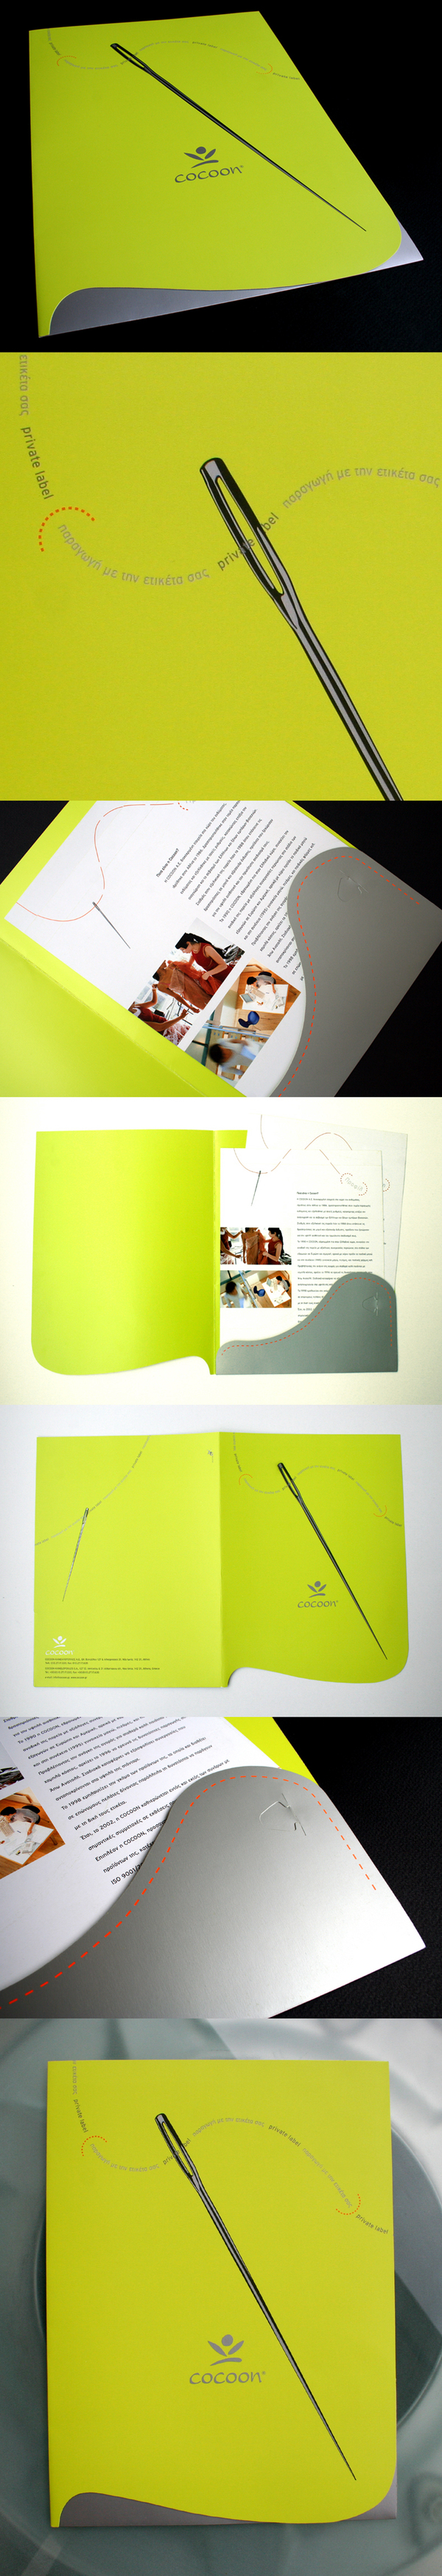 folder clothes Private label green Needle